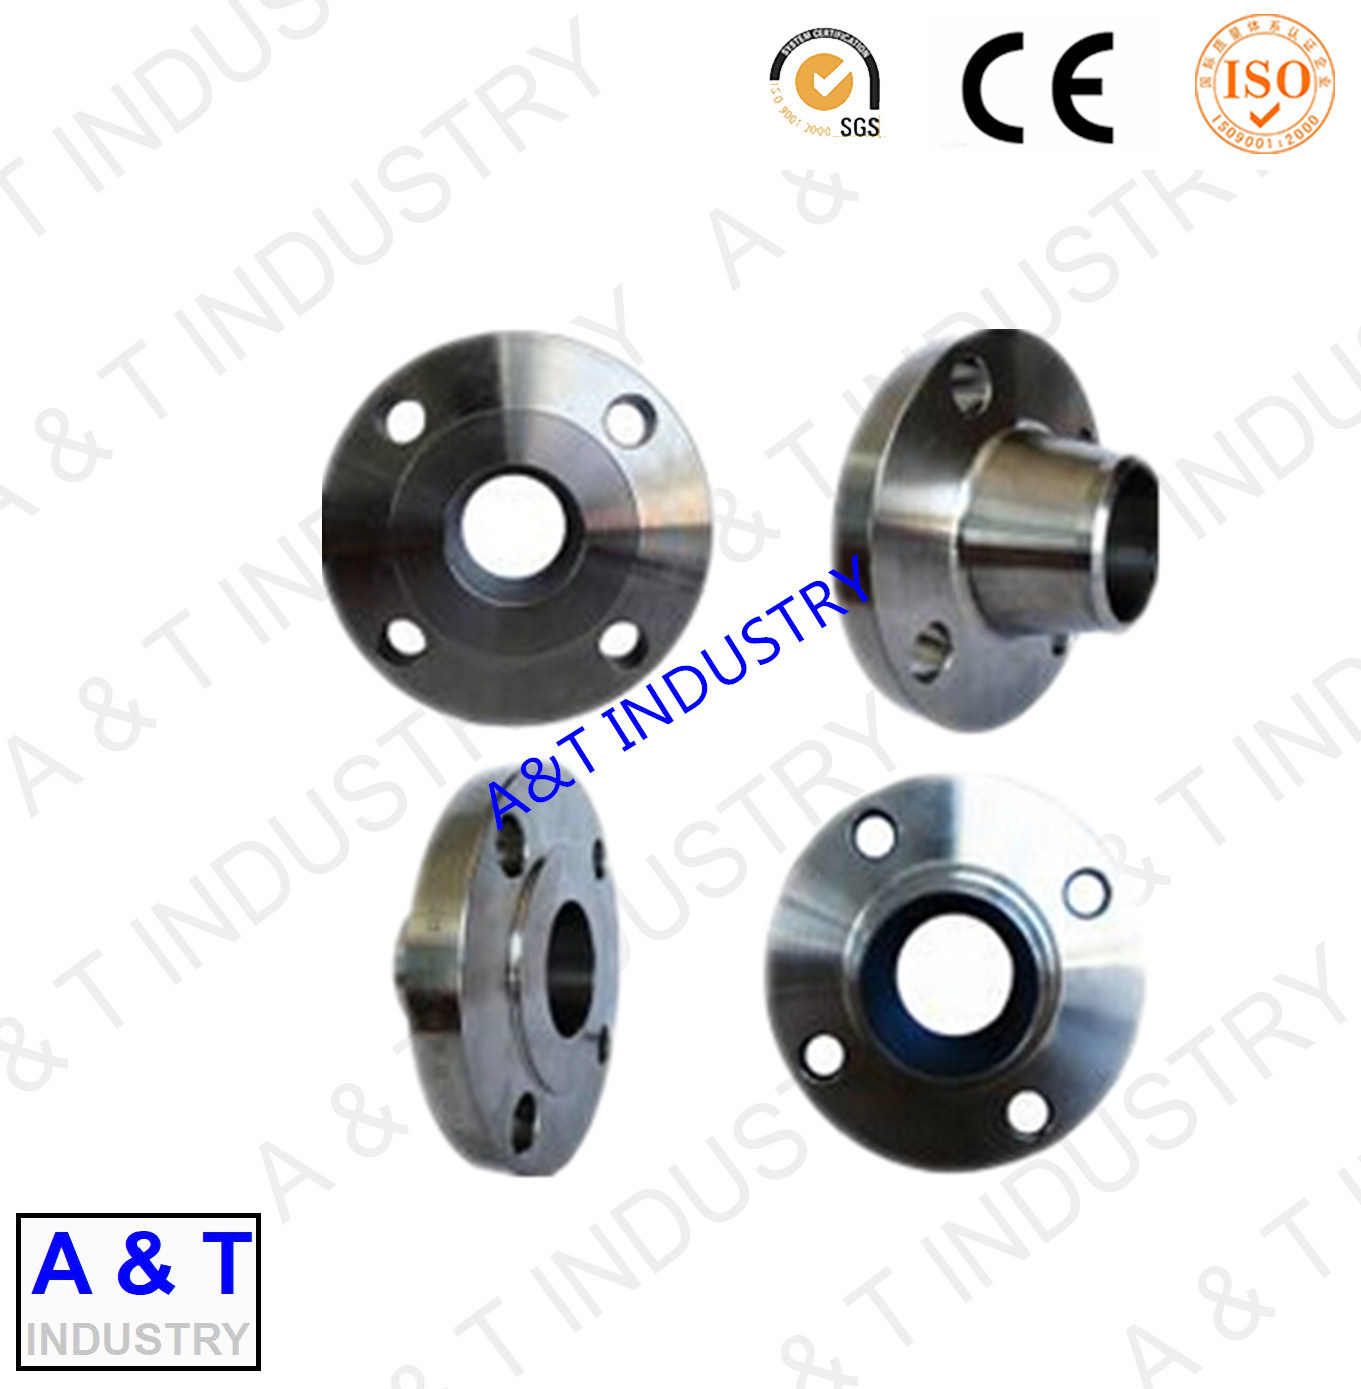 Aluminum Alloy Casting with Powder Coating Finish